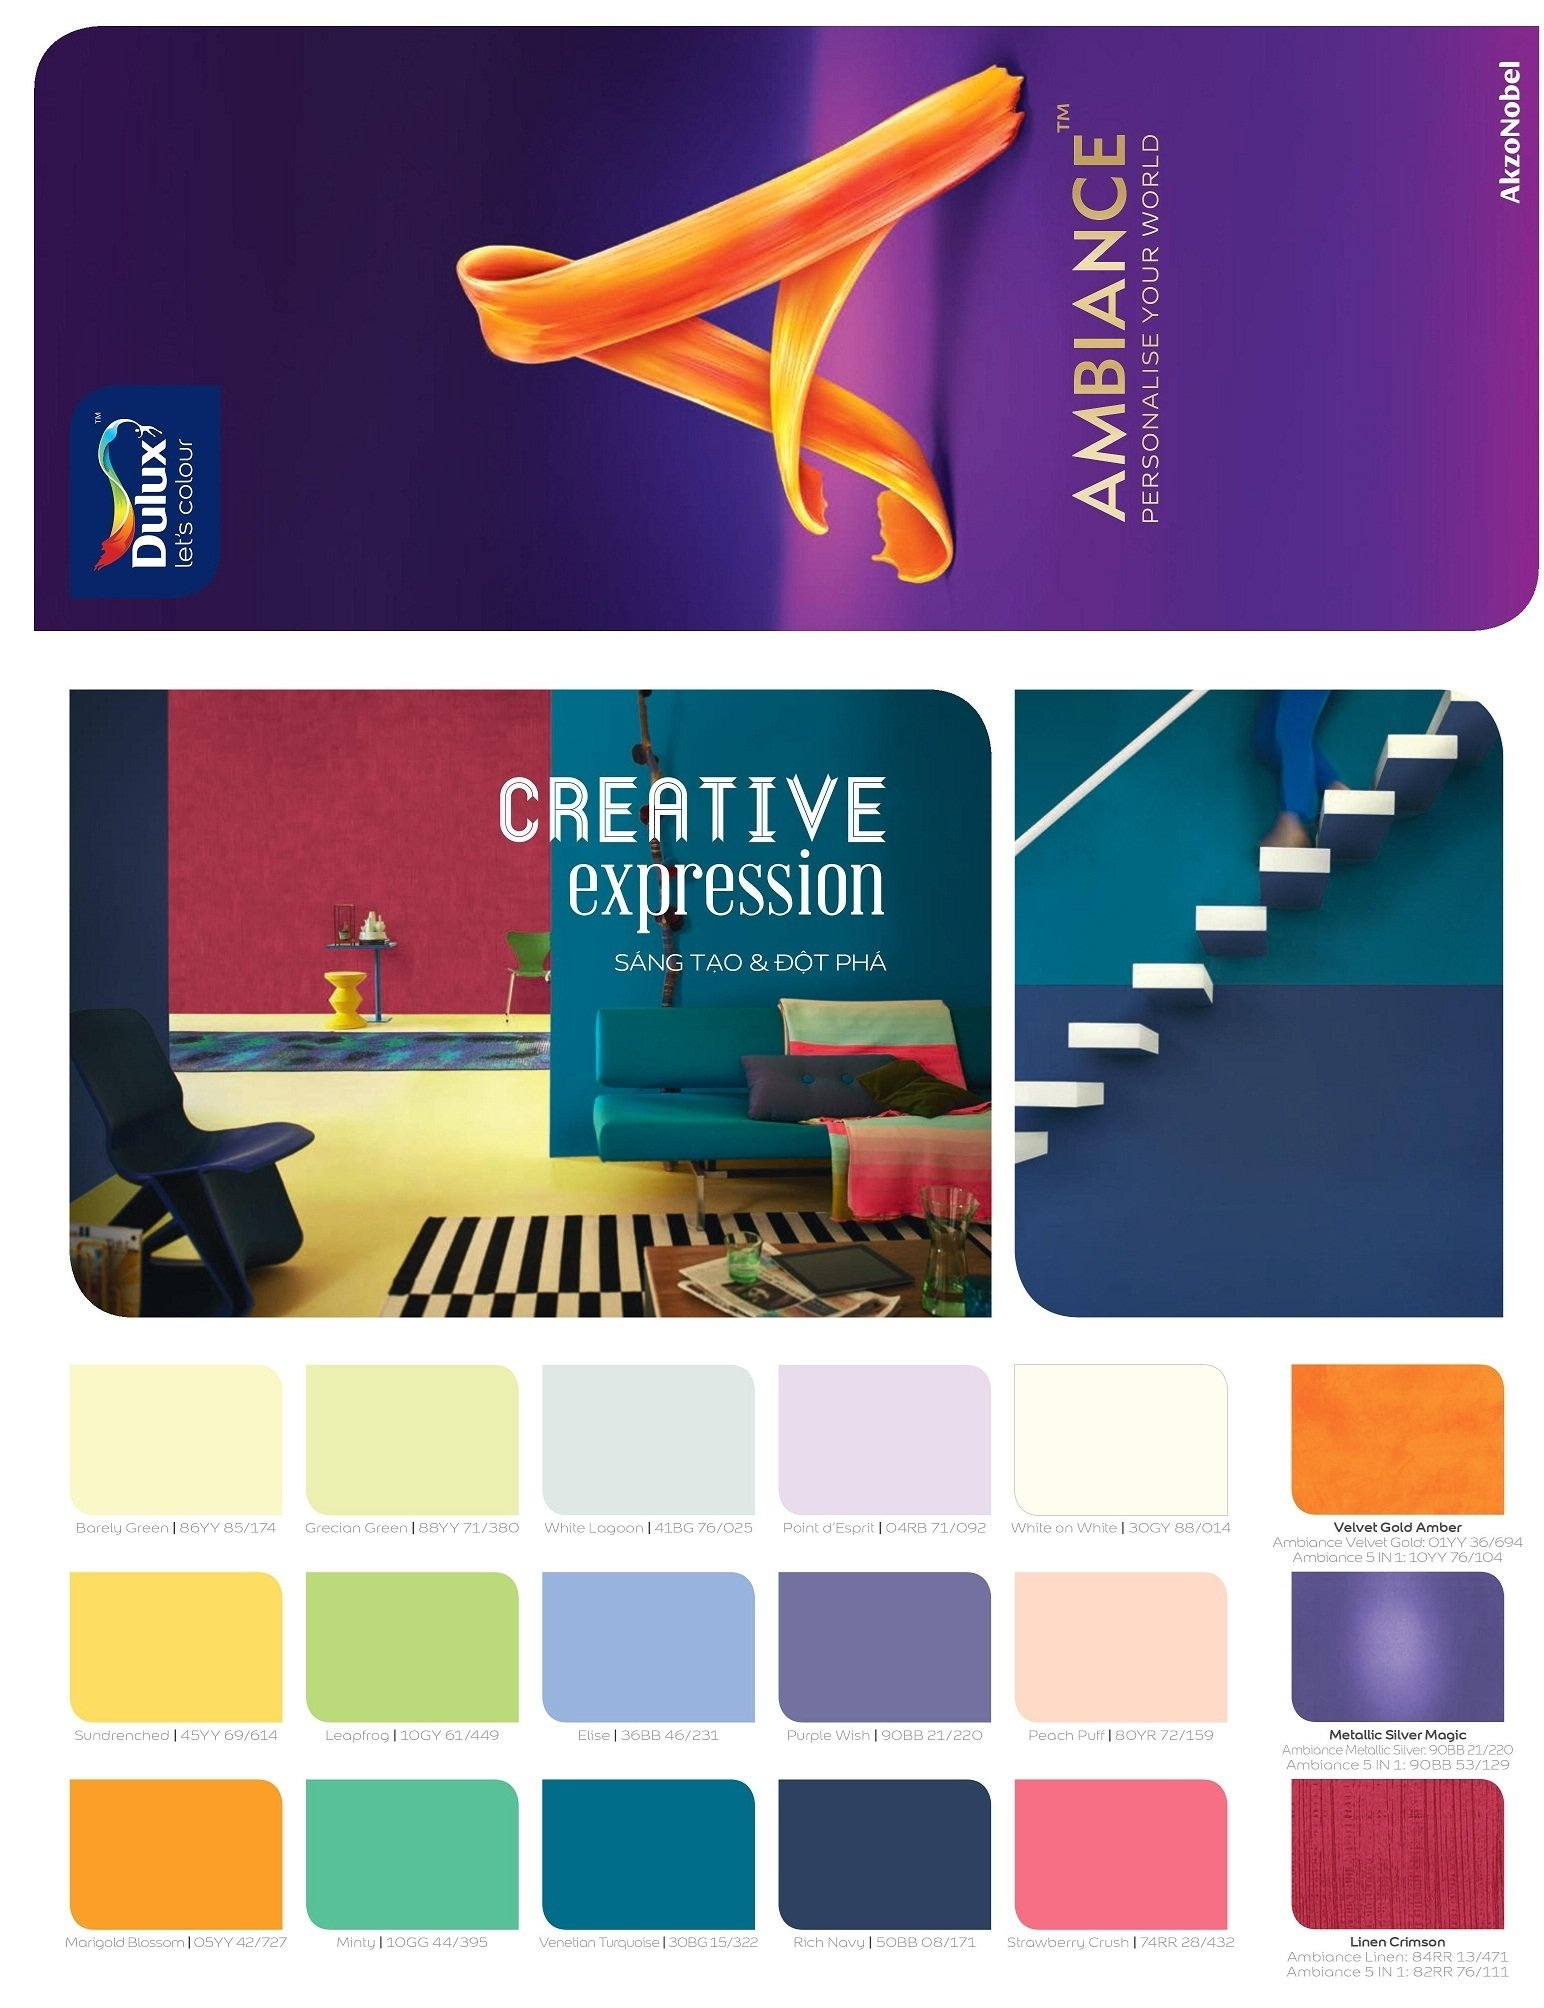 son-mai-anh-bang-mau-son-nuoc-dulux-trong-nha-dulux-ambiance-5in1-1